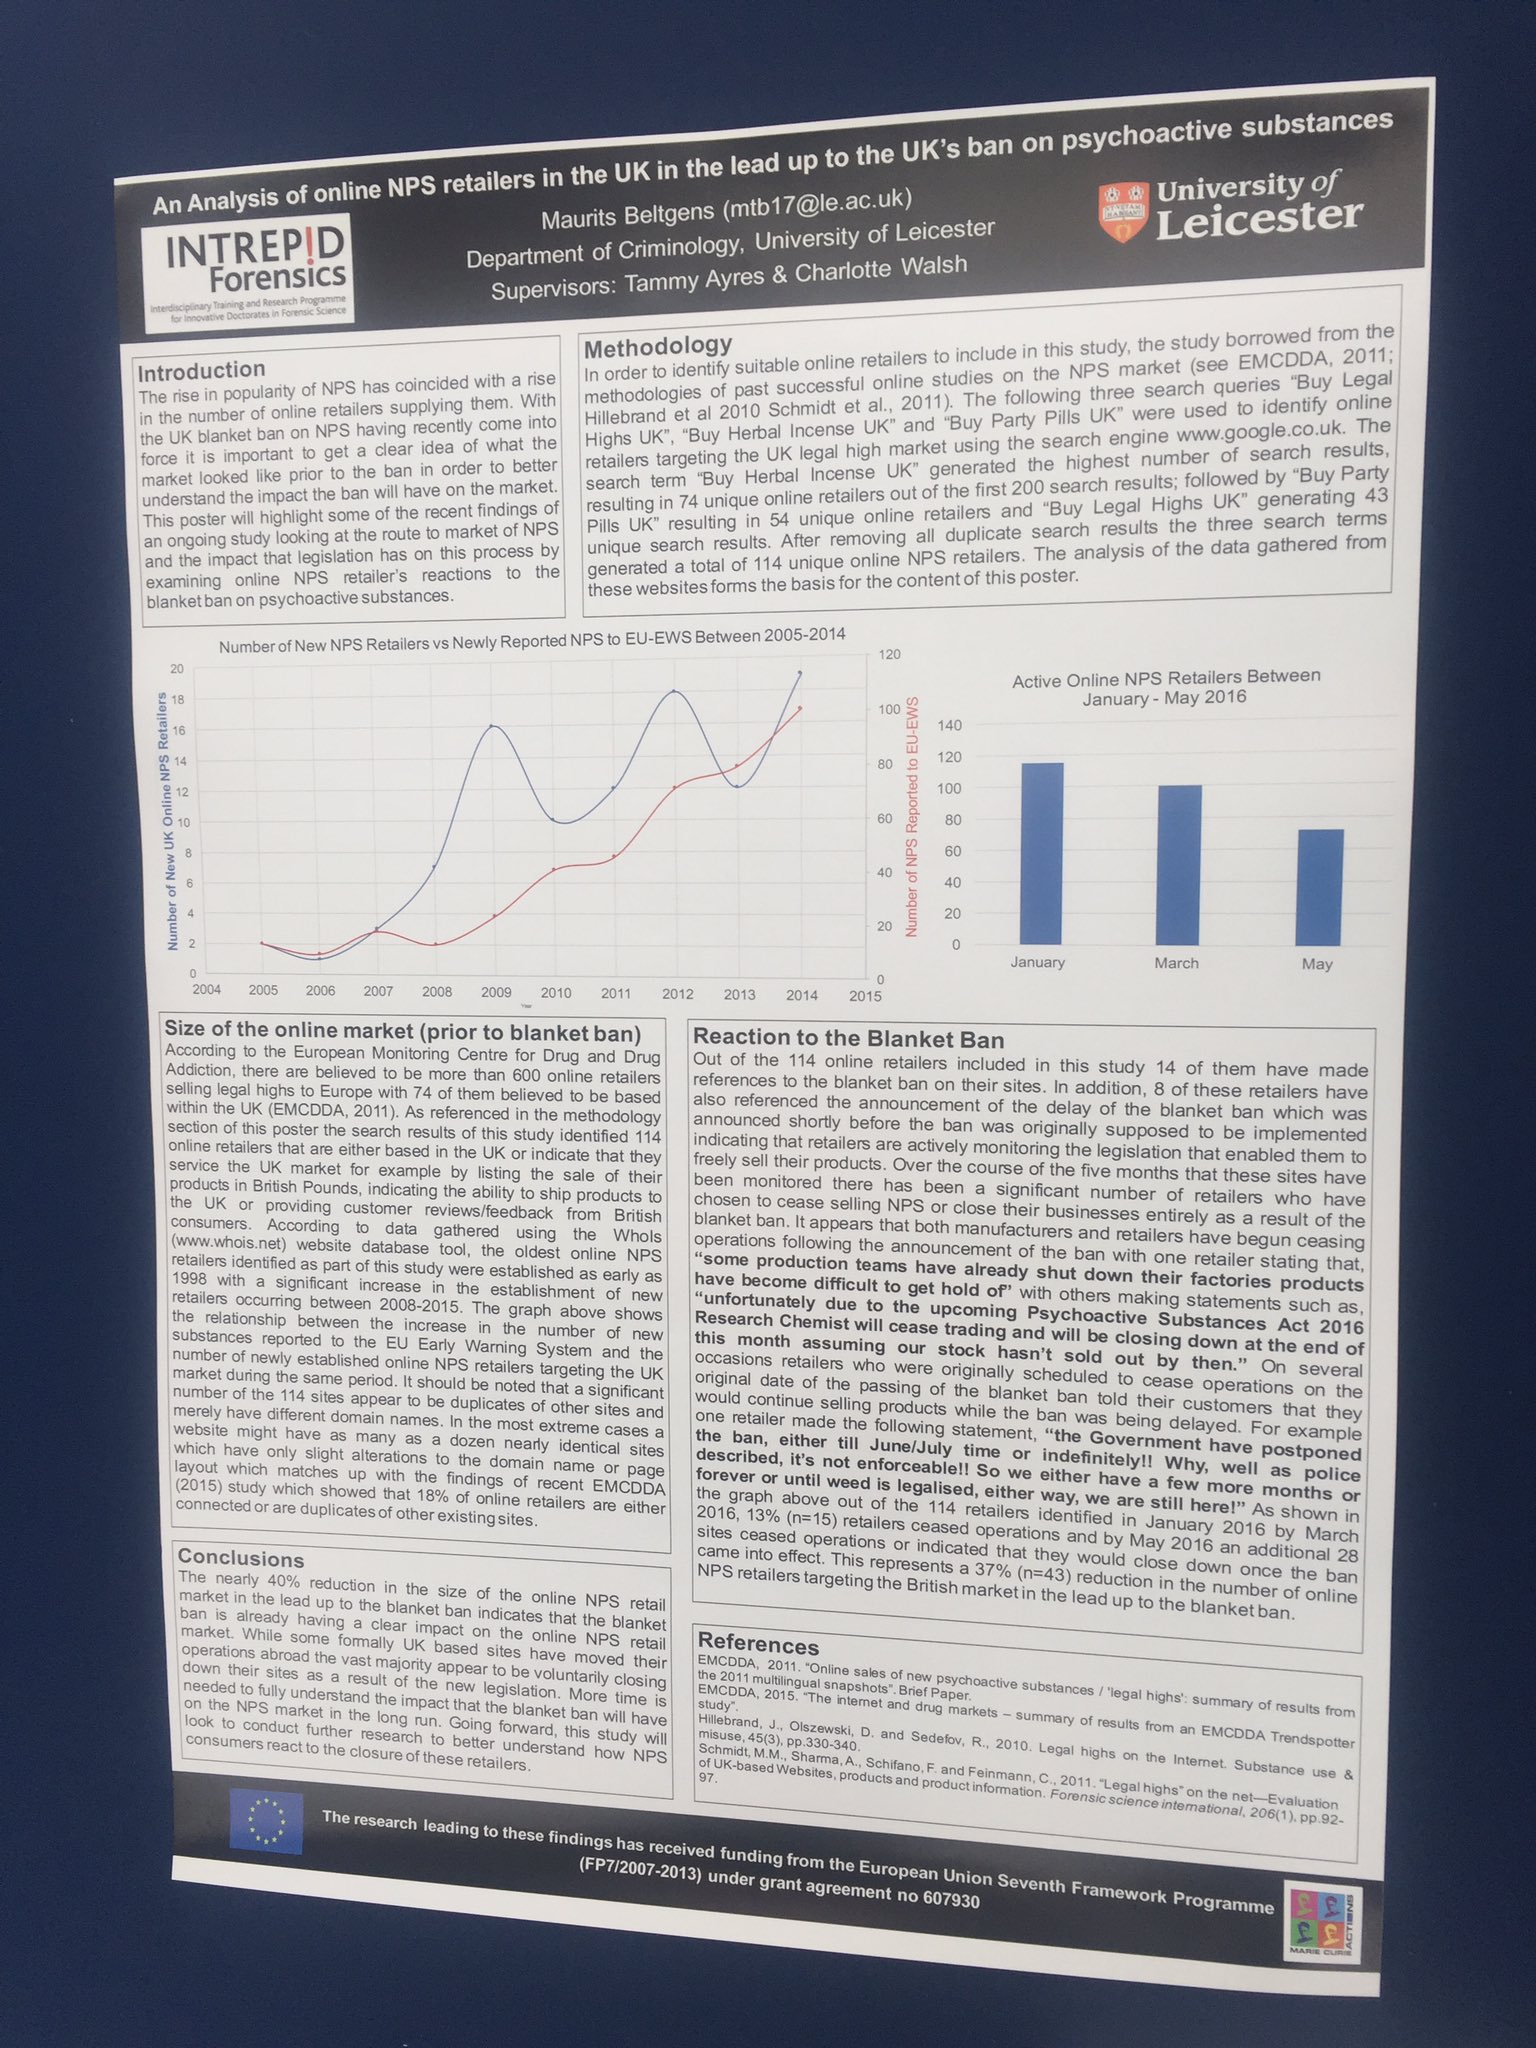 Here's @MauritsBeltgens poster on psychoactive substances at @BritSocCrim #BSCConf16 - good job! https://t.co/CaWFDIZFGG